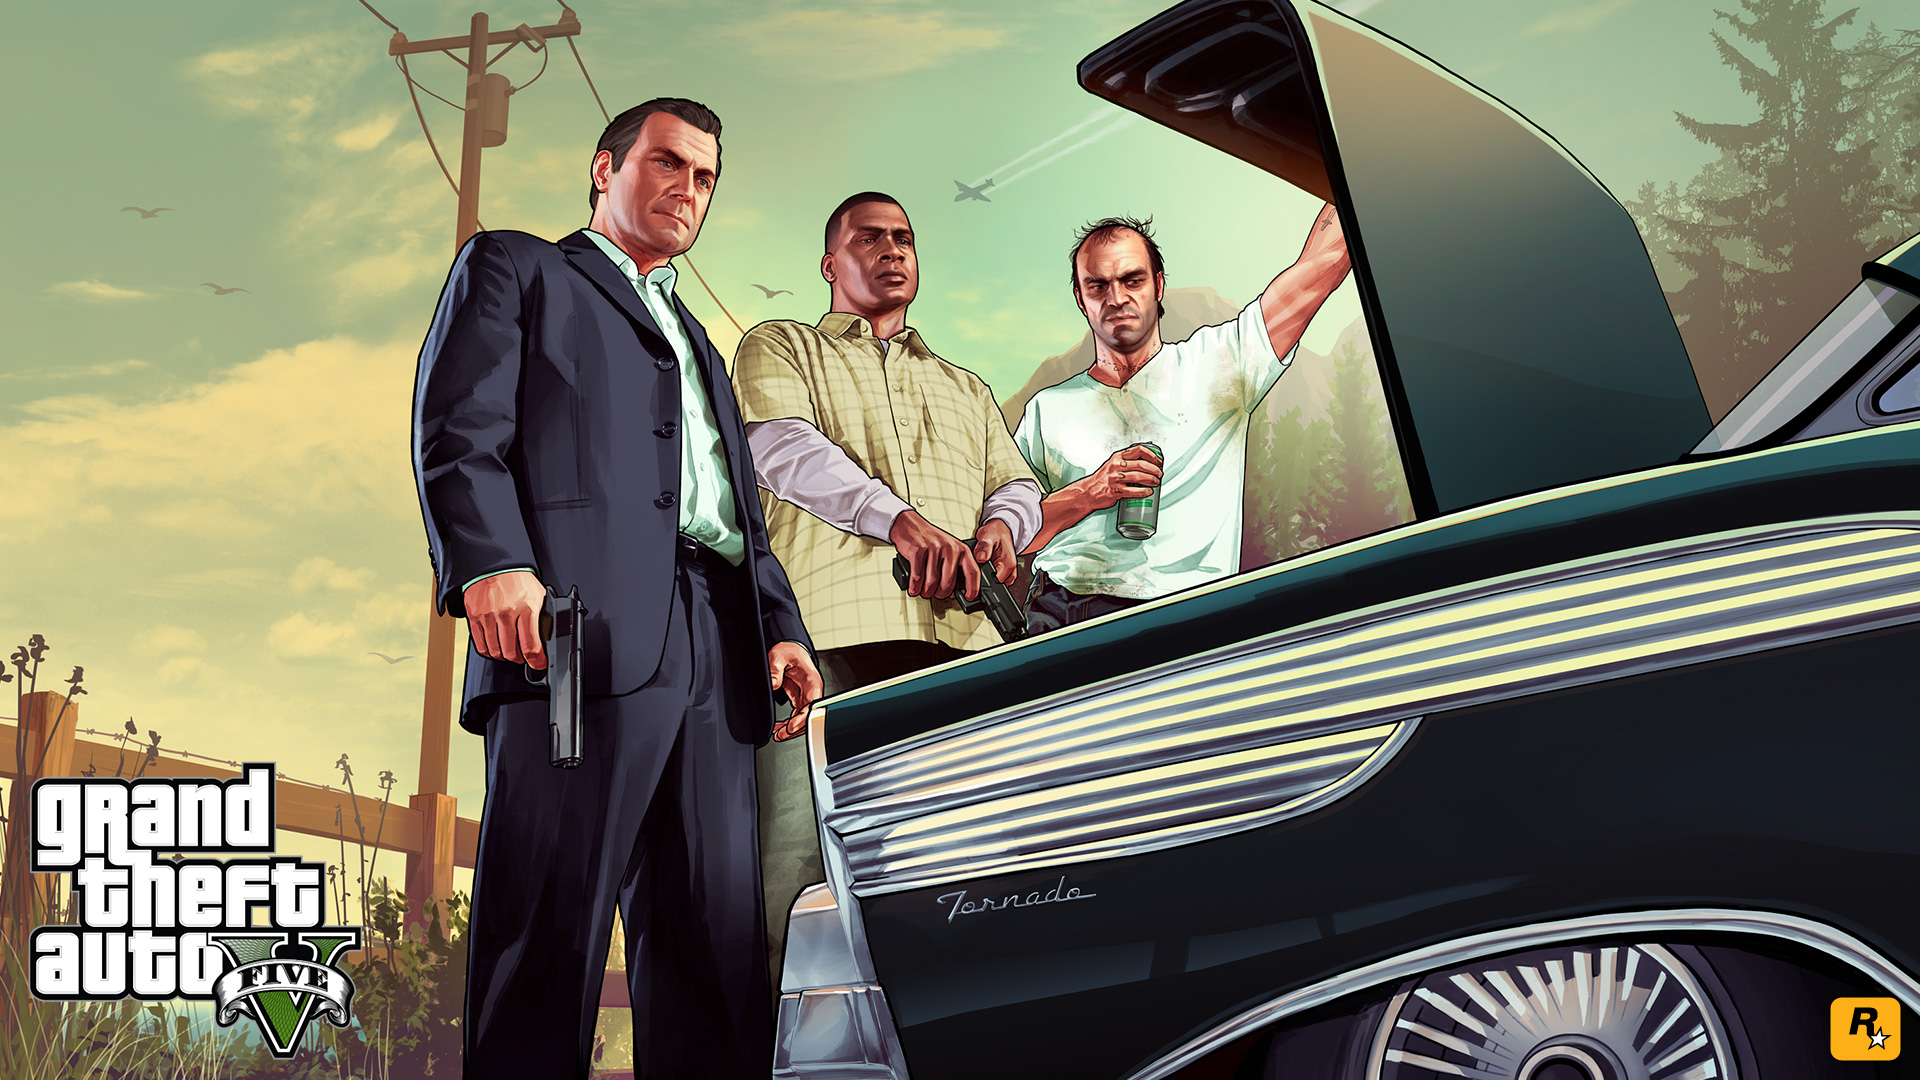 gta for xbox 360 wallpapers - photo #12